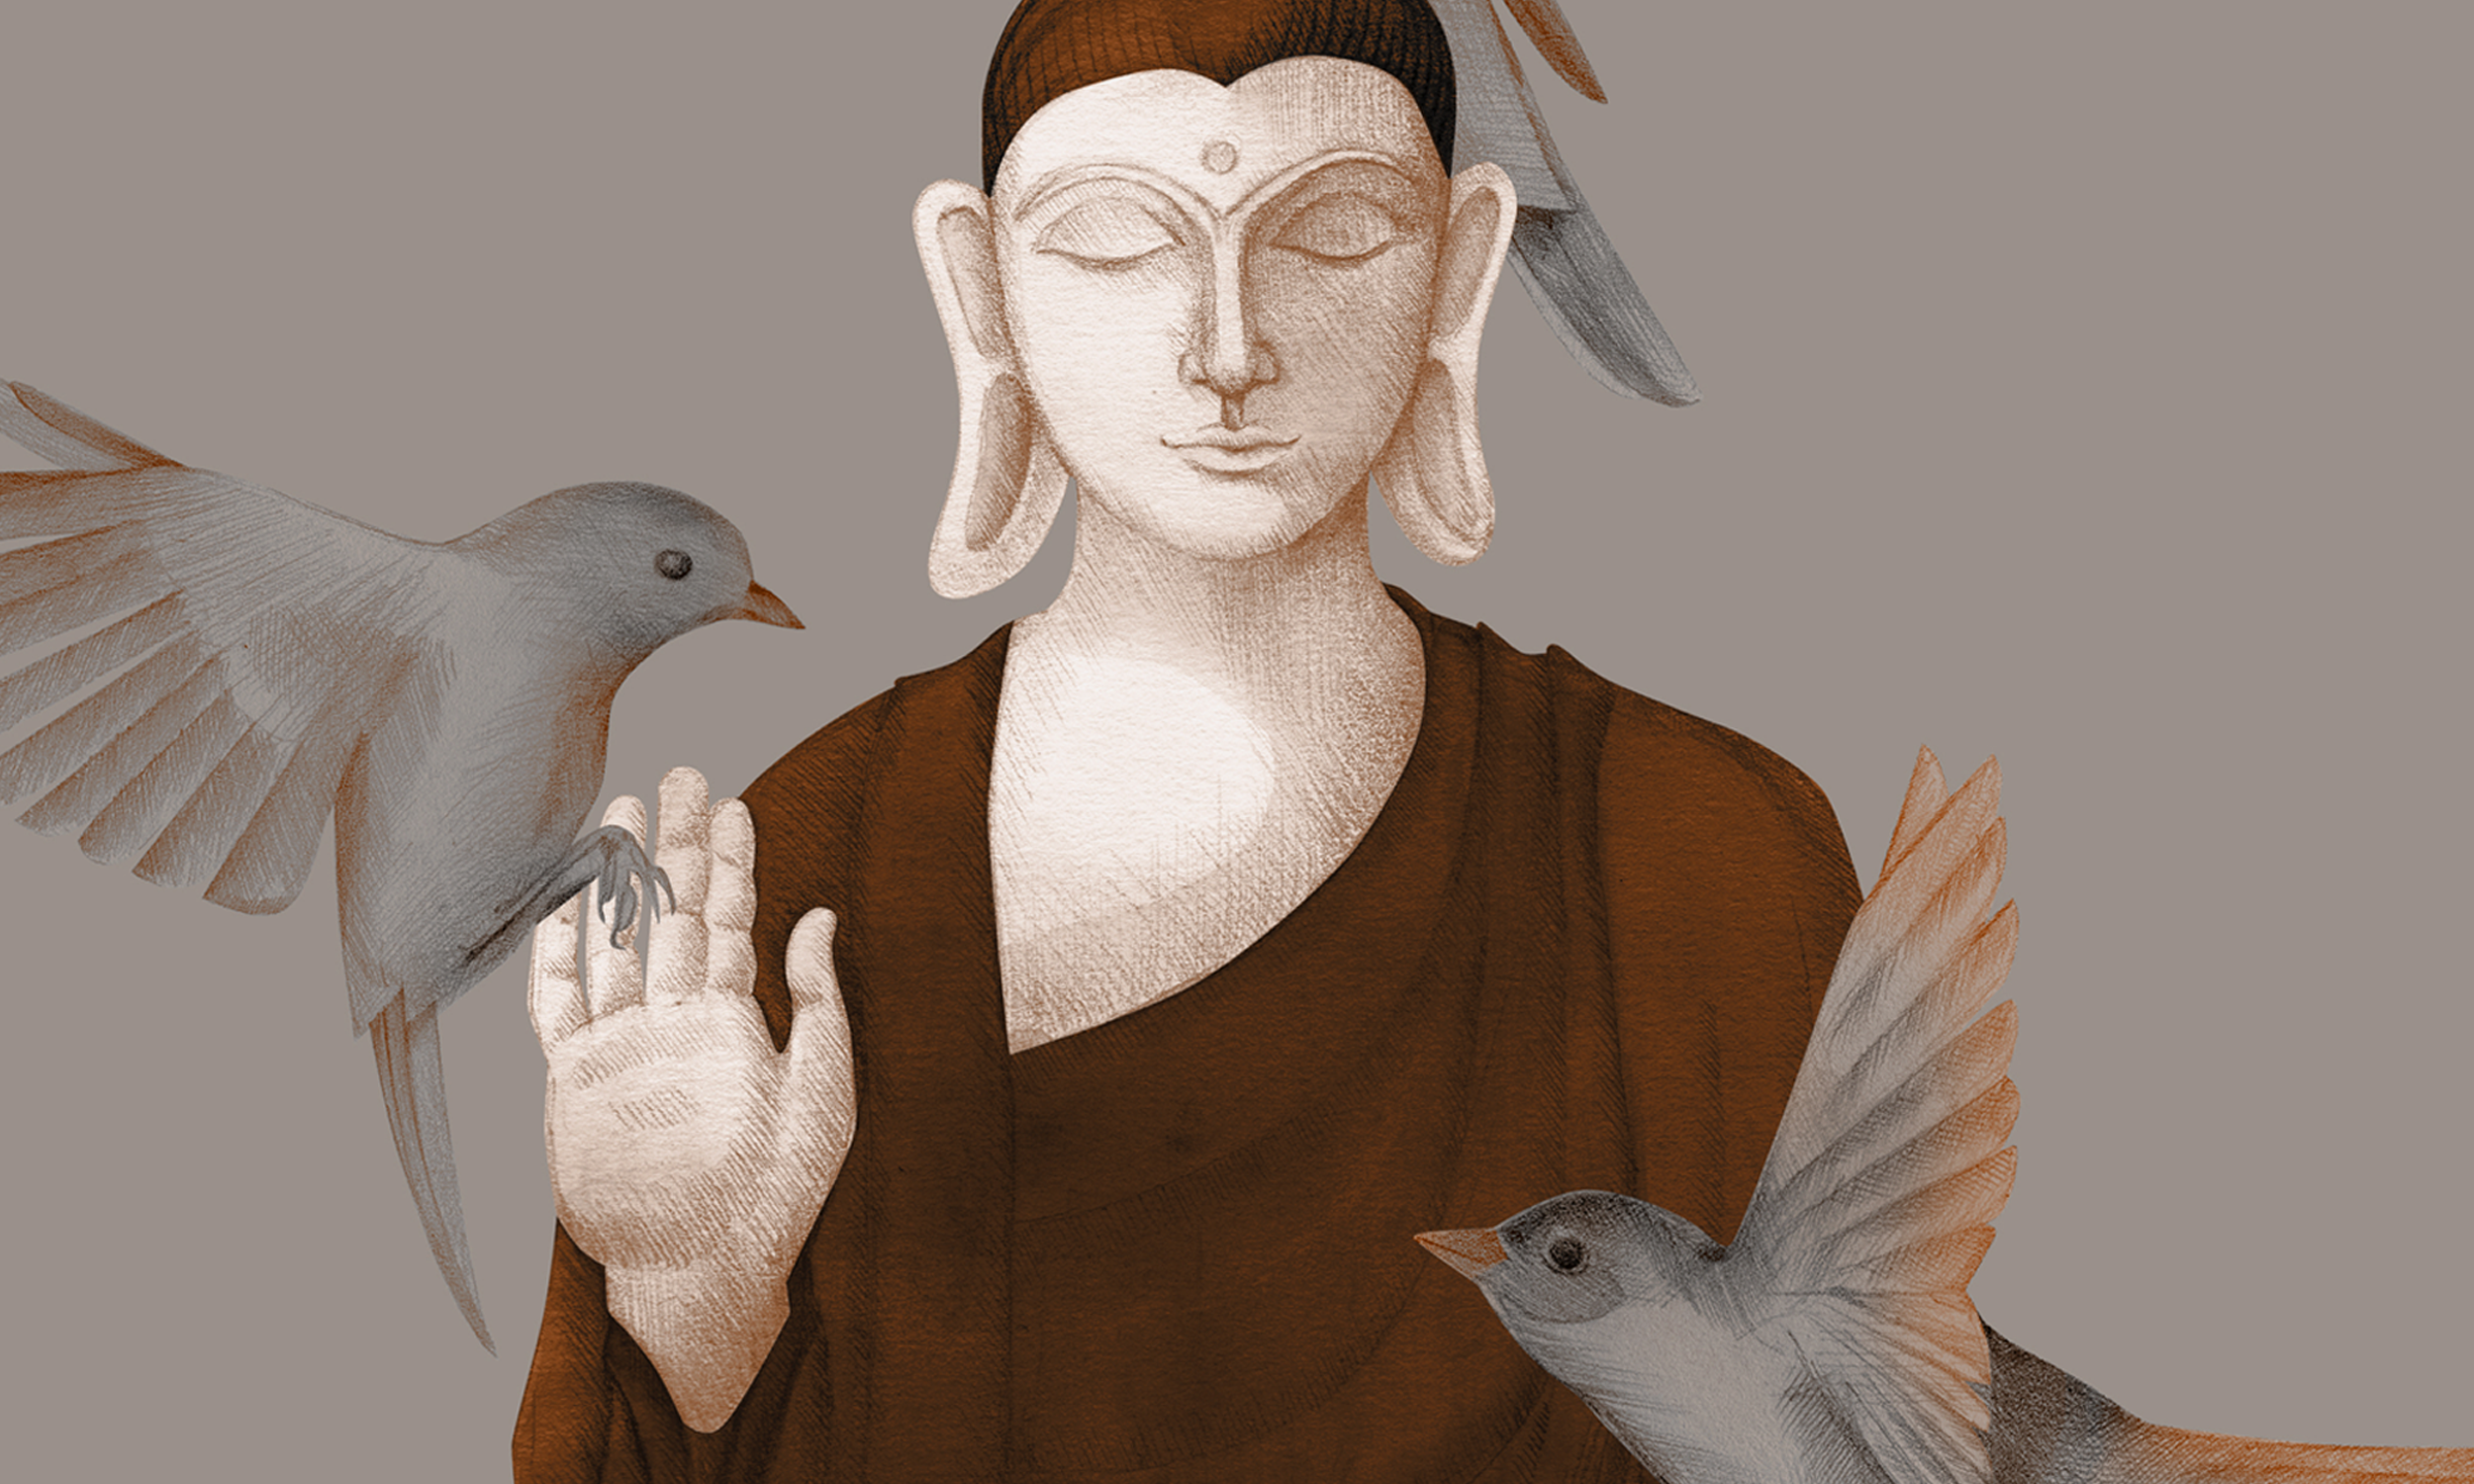 illustration_buddha_2500x1500_10